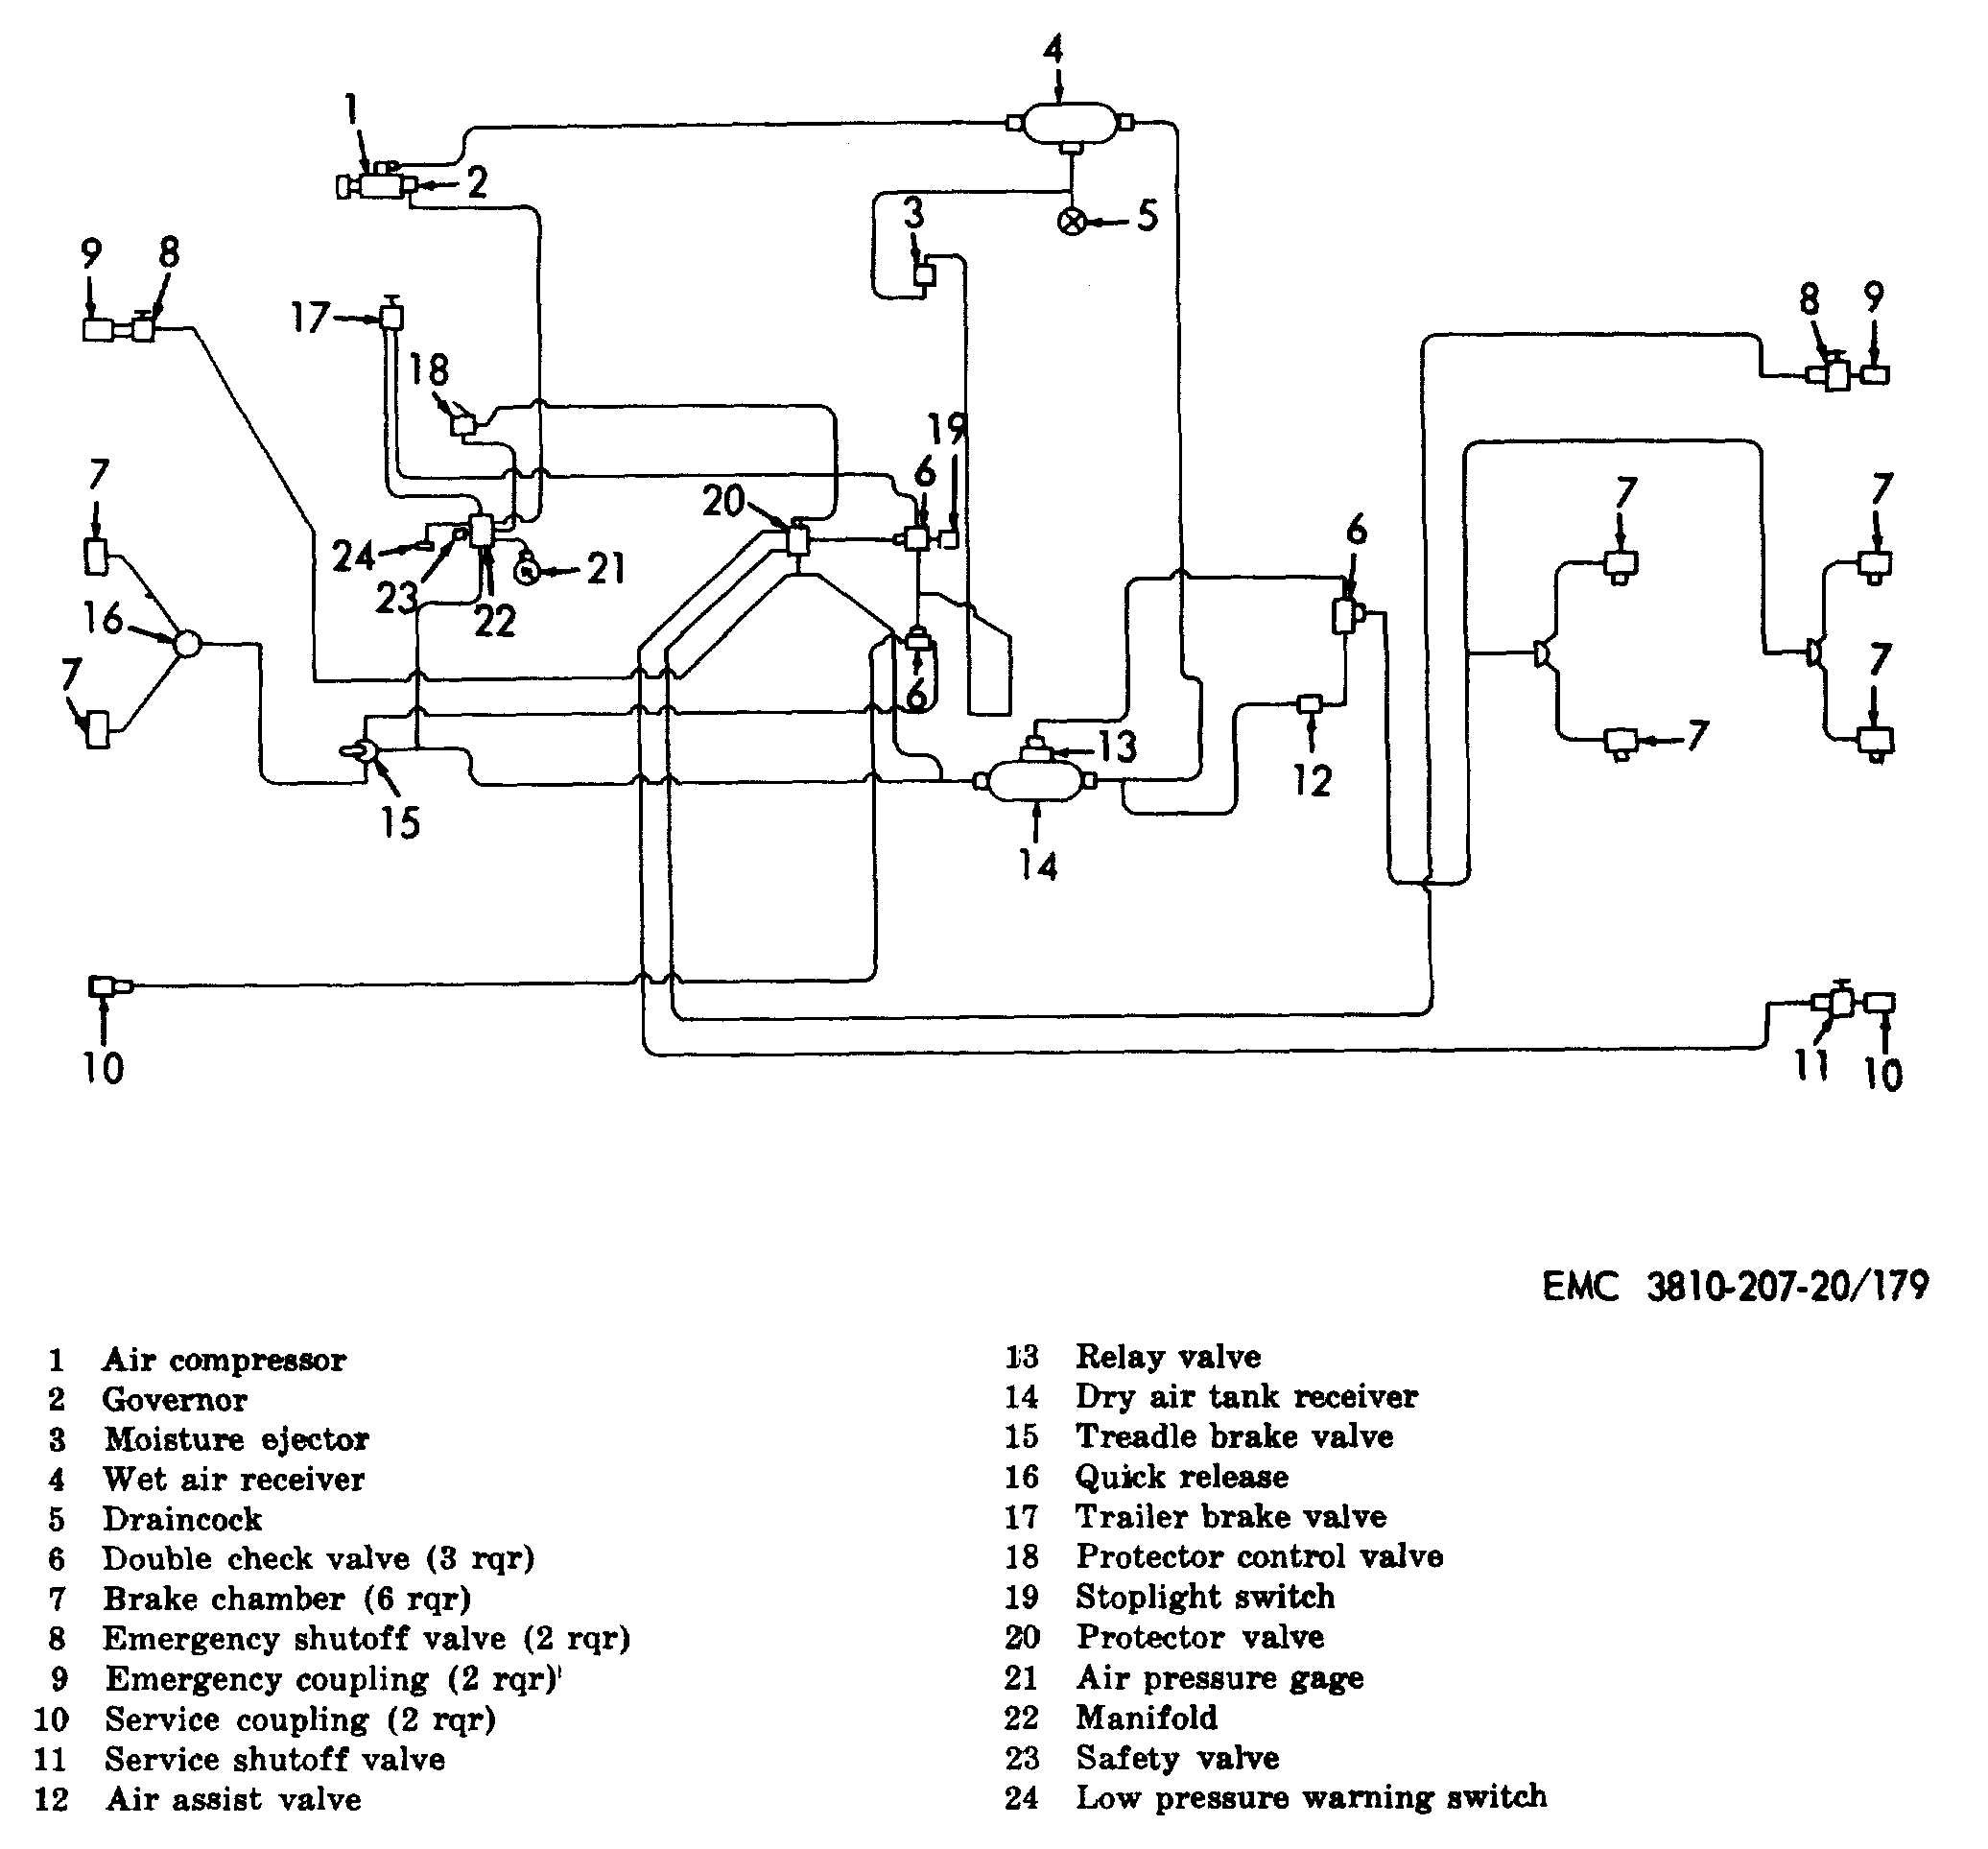 Brake Chamber Diagram Air Buzzer And Low Pressure Valve My Wiring Of